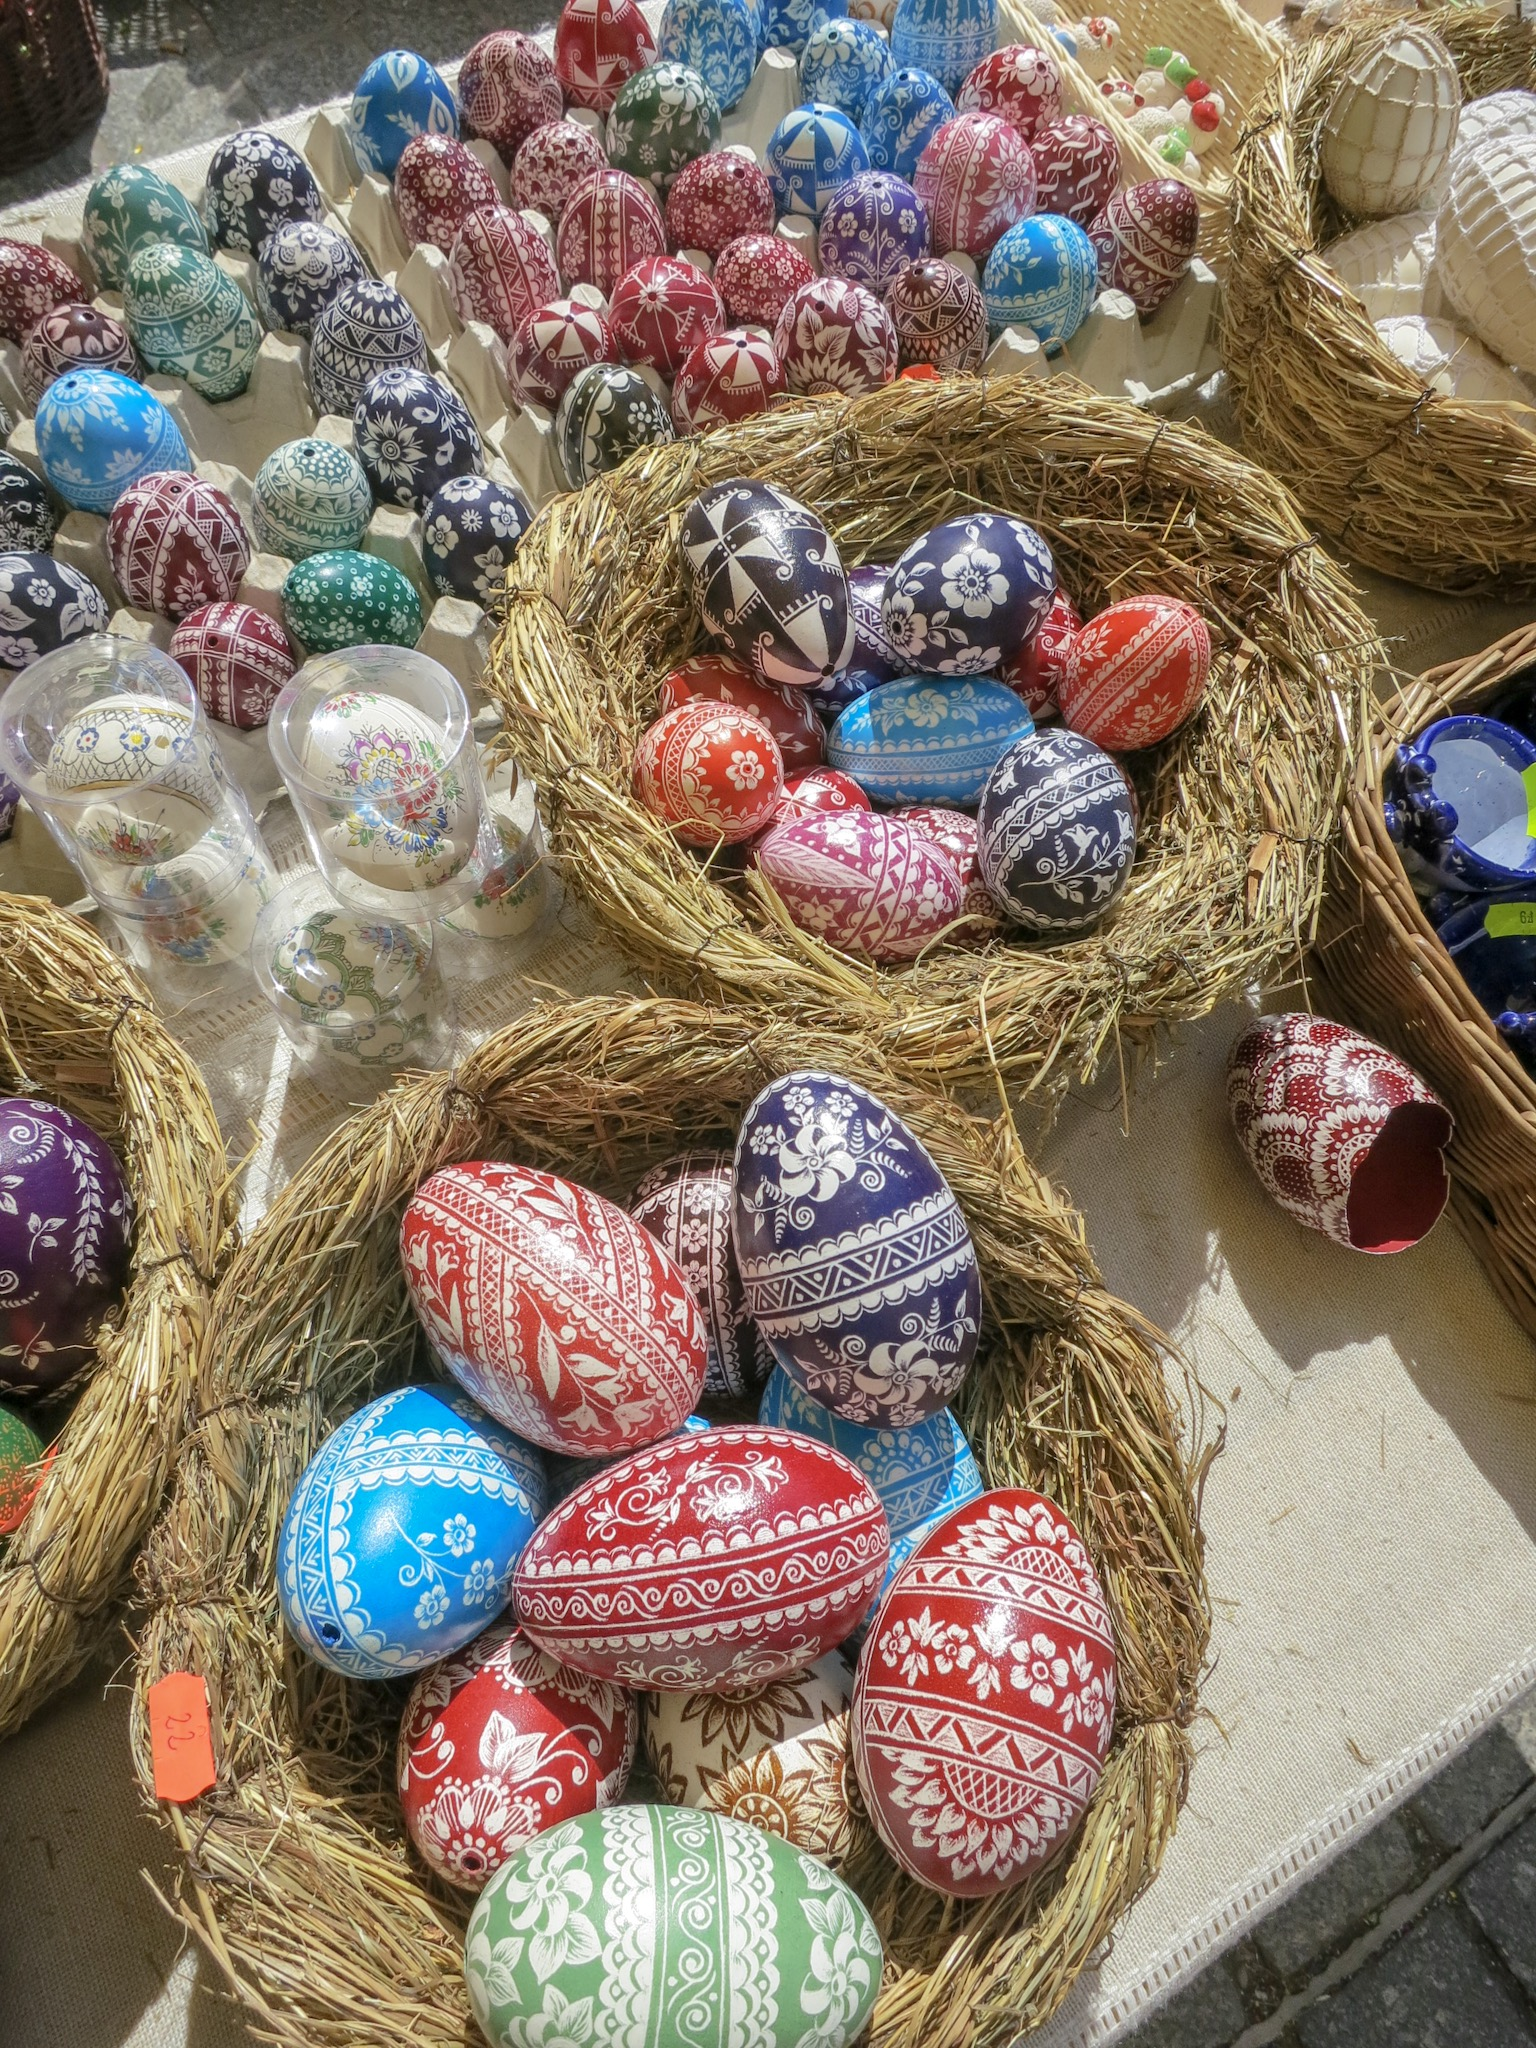 Intricately painted chicken and duck eggs